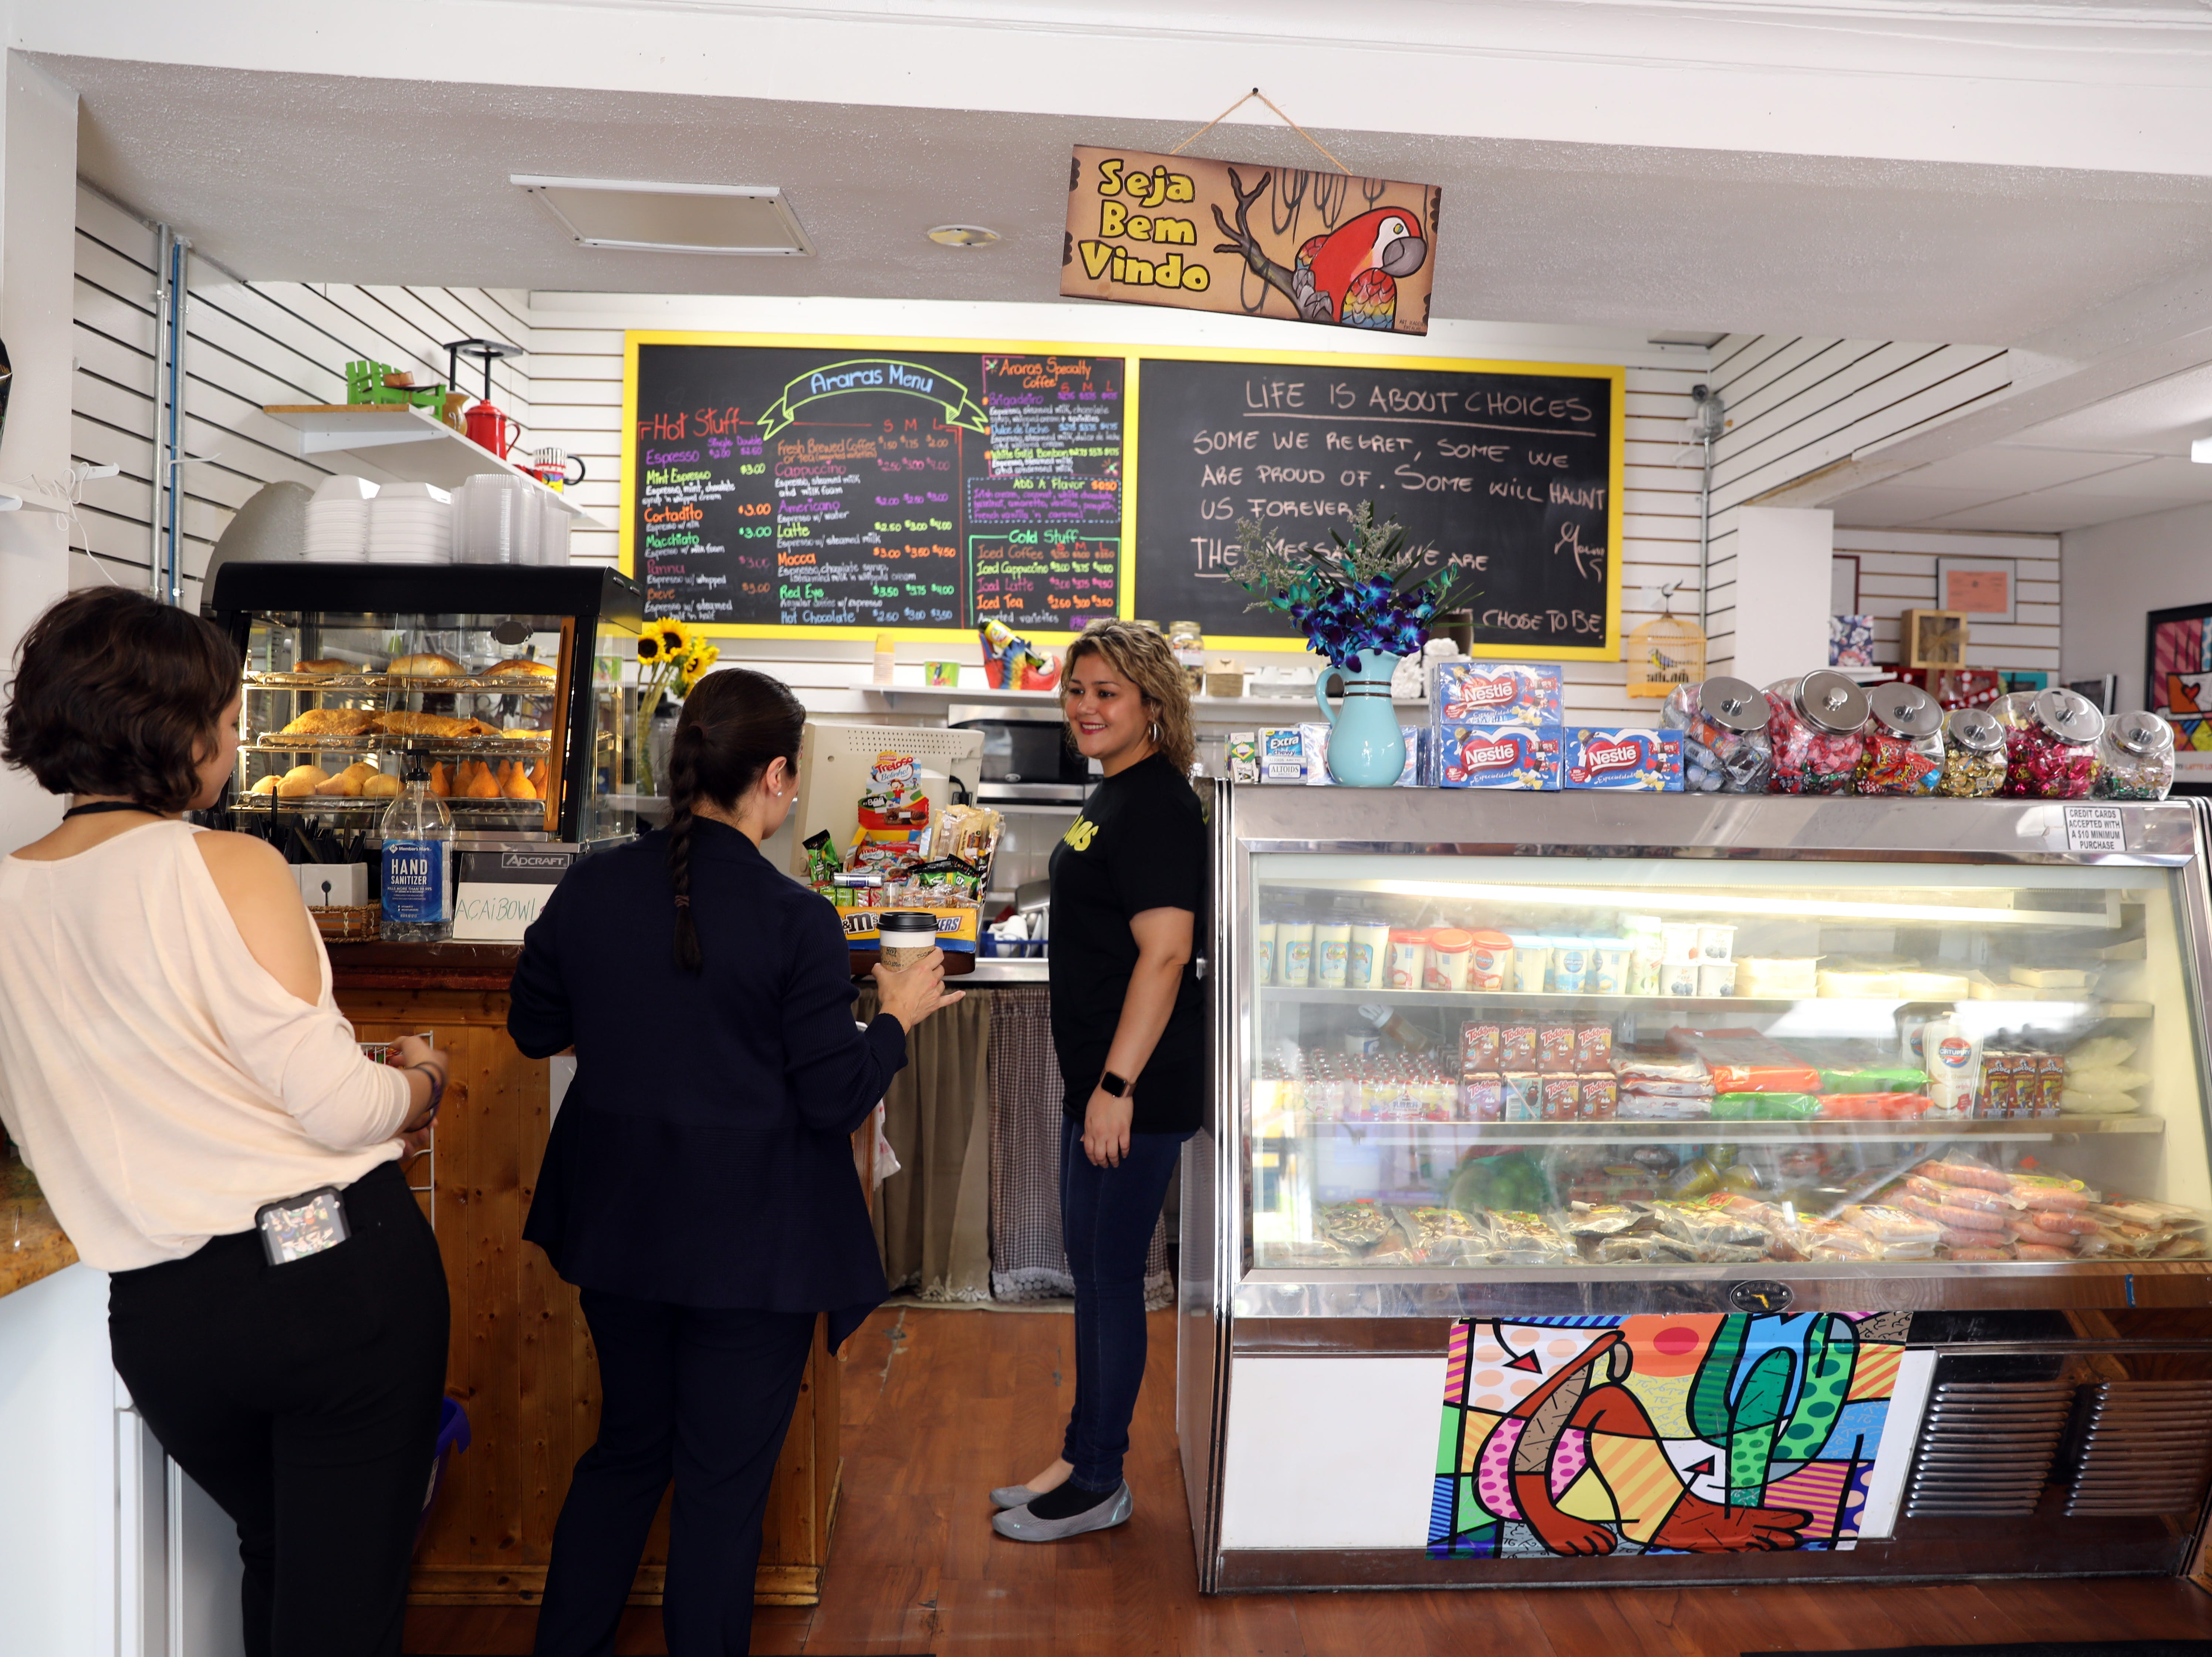 Co-owner Marina Cardozo chats with a customer at Araras Coffee & More in White Plains. The cafe sells Brazilian coffee and treats.